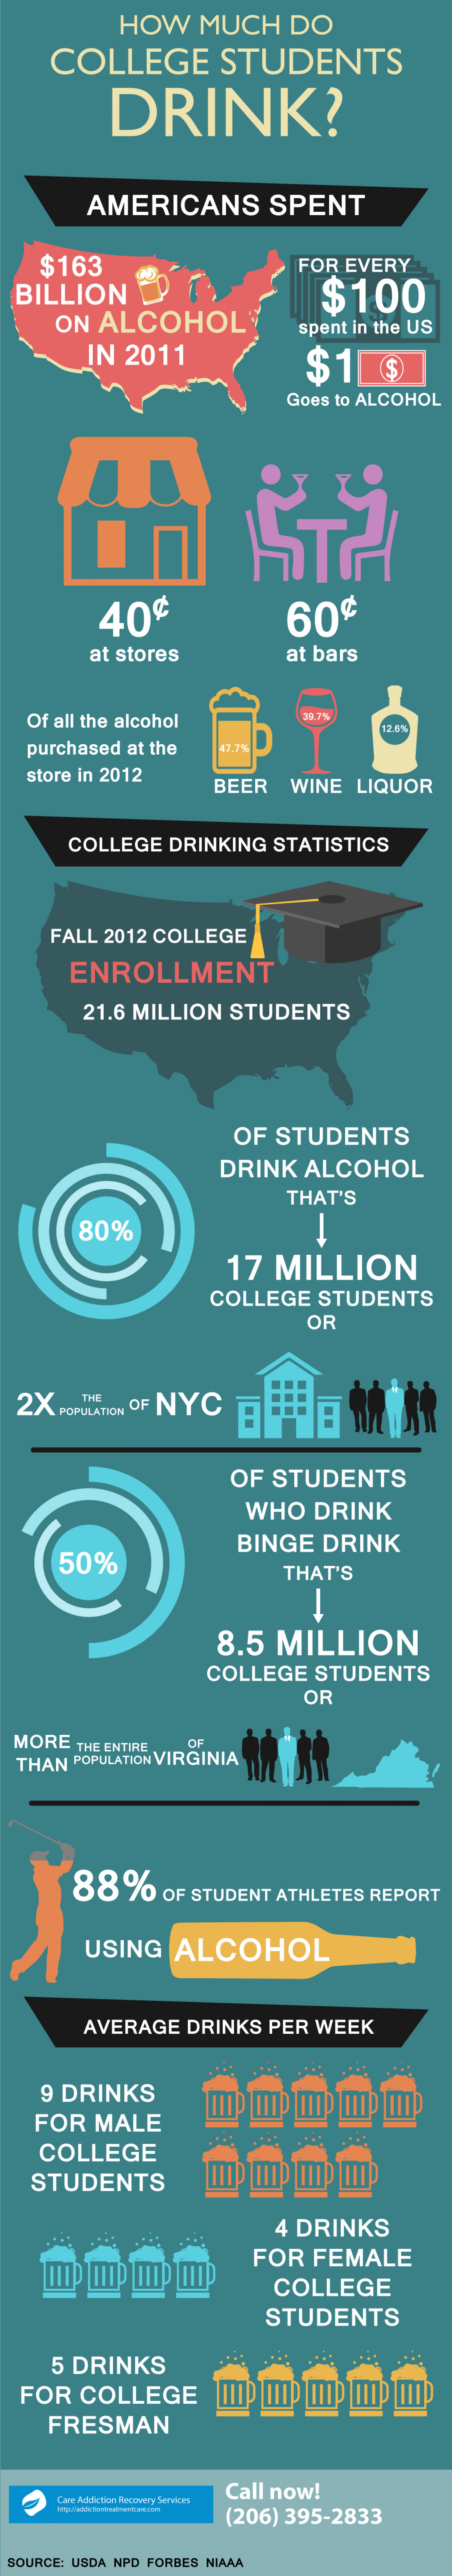 How Much Do College Students Drink | Care Addiction Recovery Services Infographic